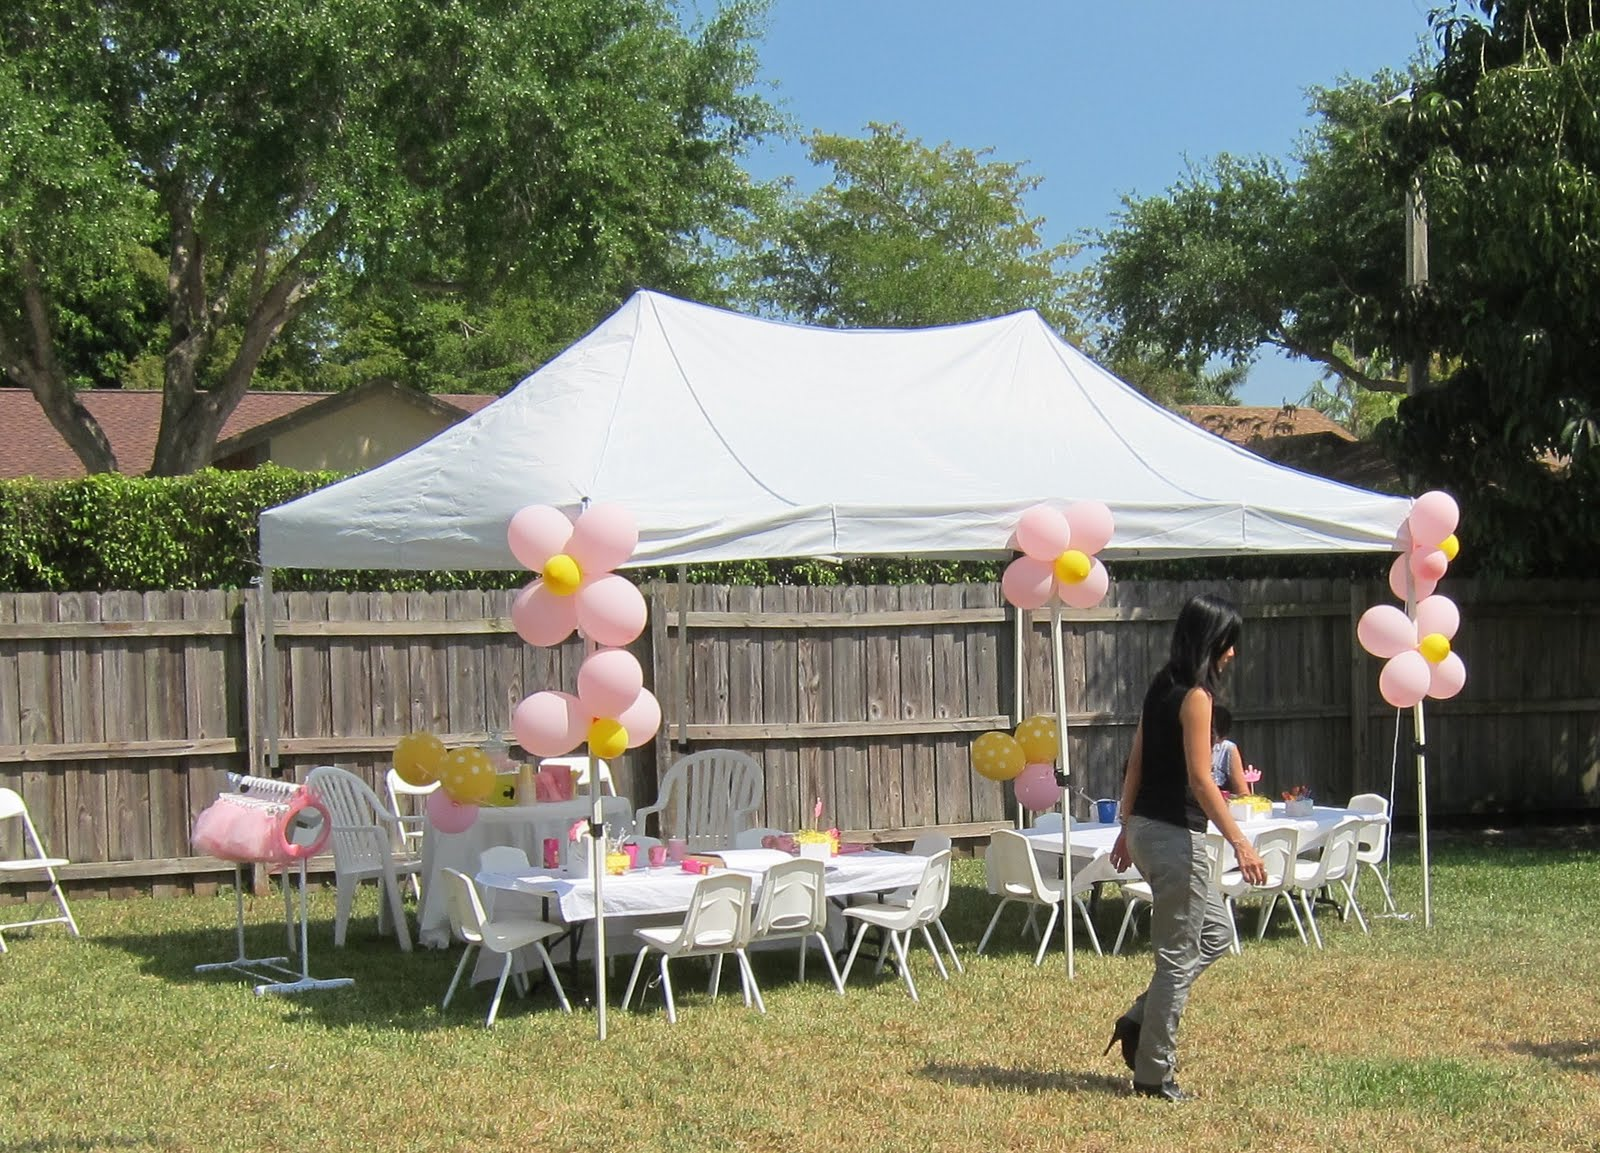 Pics for party tent decoration ideas for Outdoor party tent decorating ideas